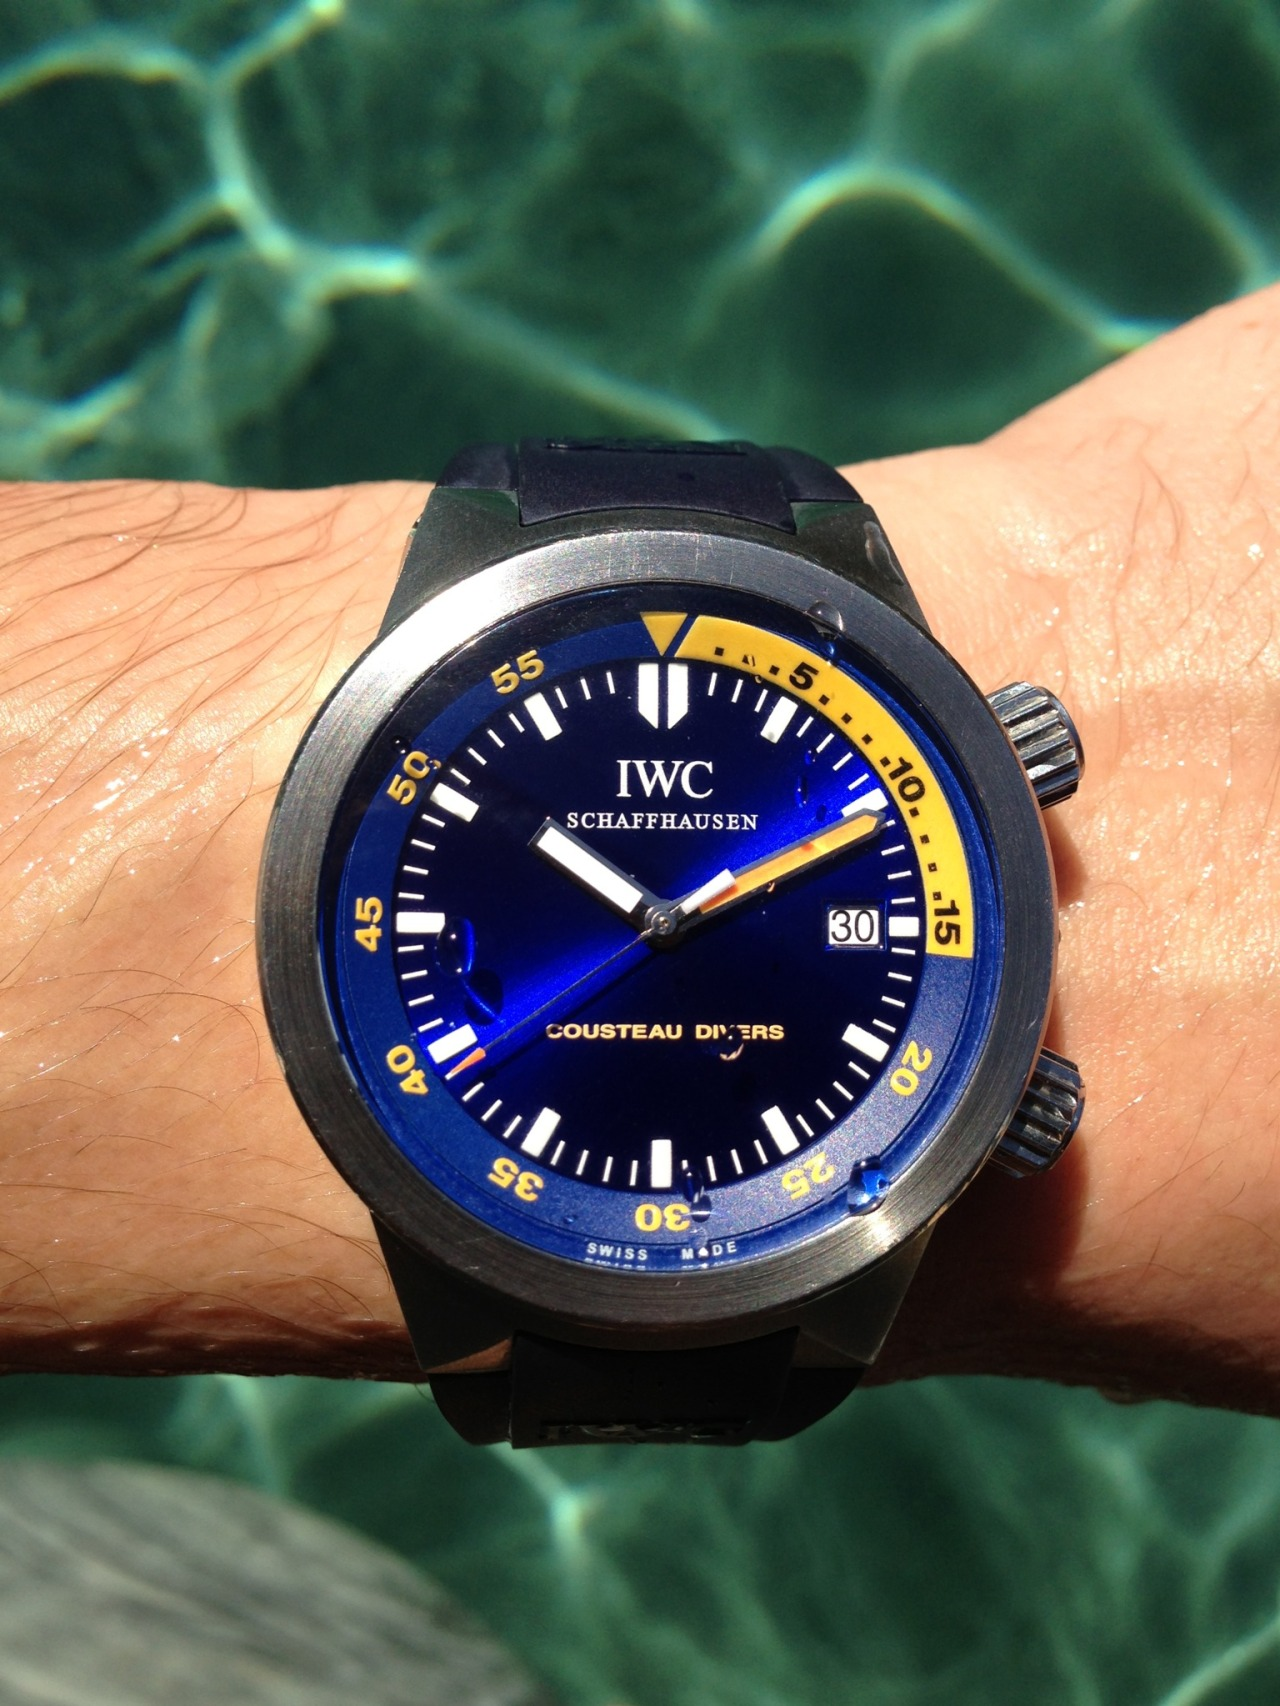 hodinkee:  My vacation watch for the past eight years. IWC Cousteau Diver's Aquatimer. -JM